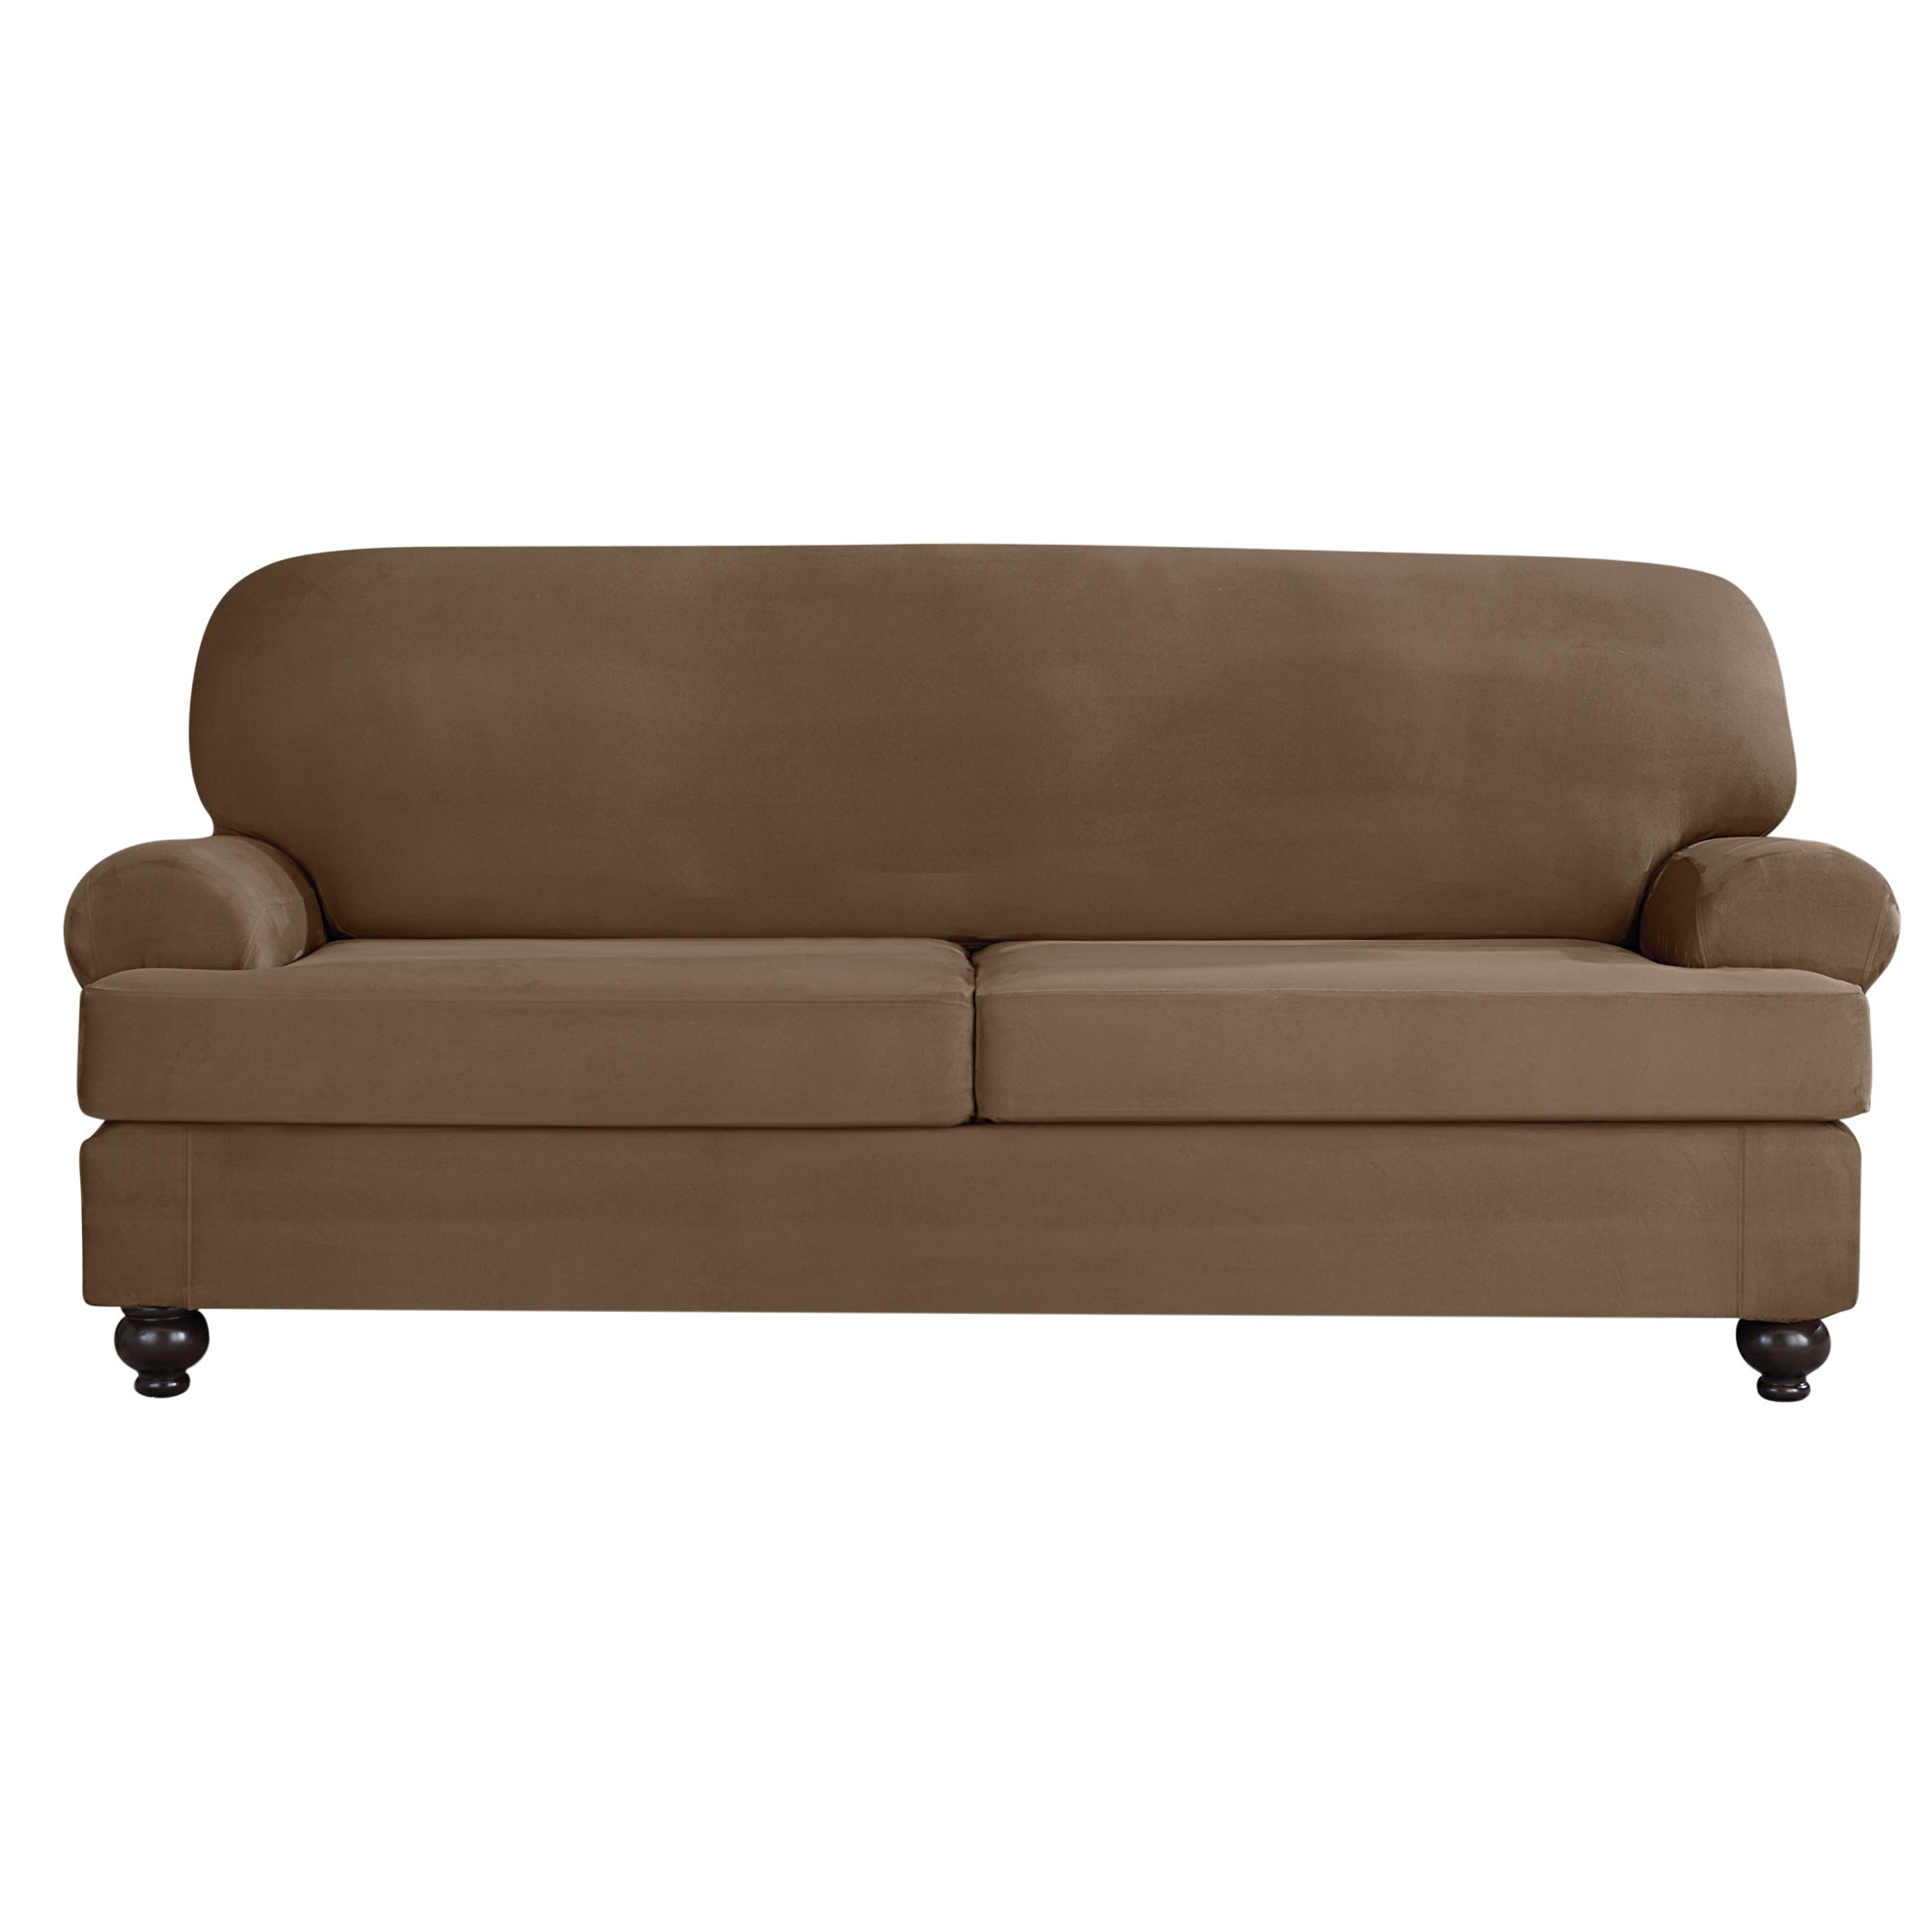 Sure Fit Designer Suede Convertible T-Cushion Sofa Furniture Cover - Taupe (SF44383)